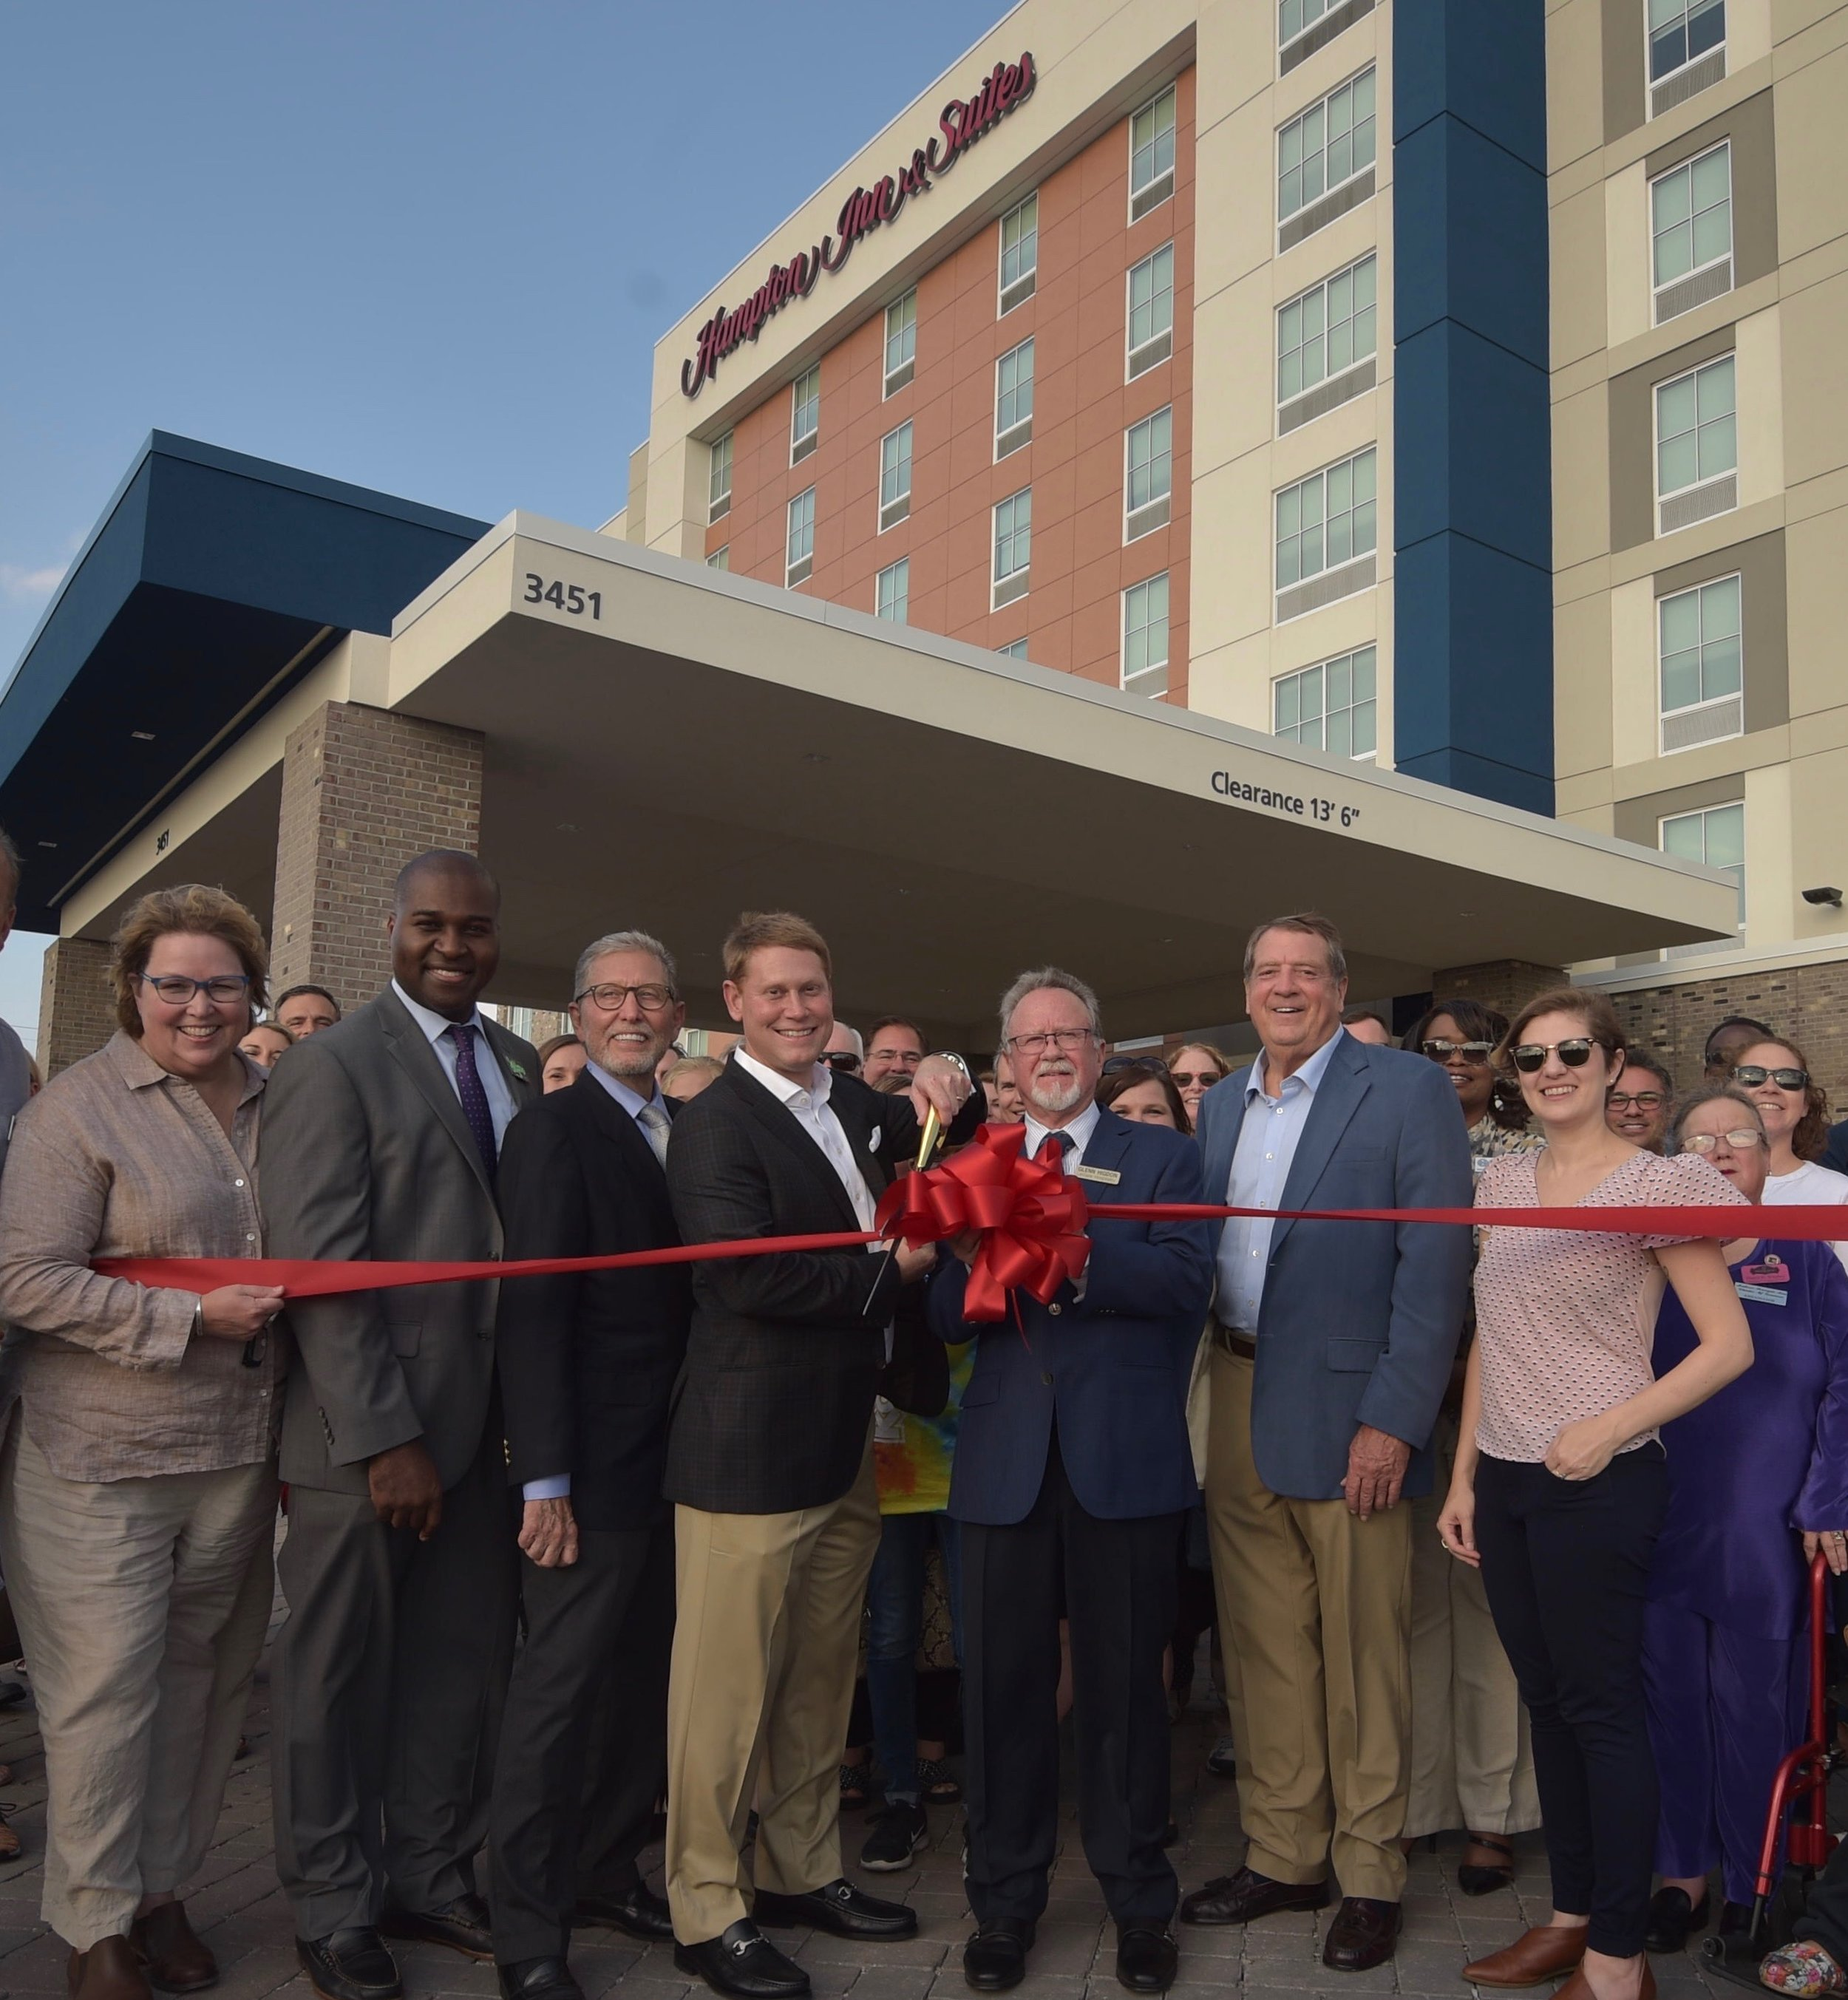 The September 19, 2019 Ribbon Cutting with Madison Rivergate Chamber of Commerce